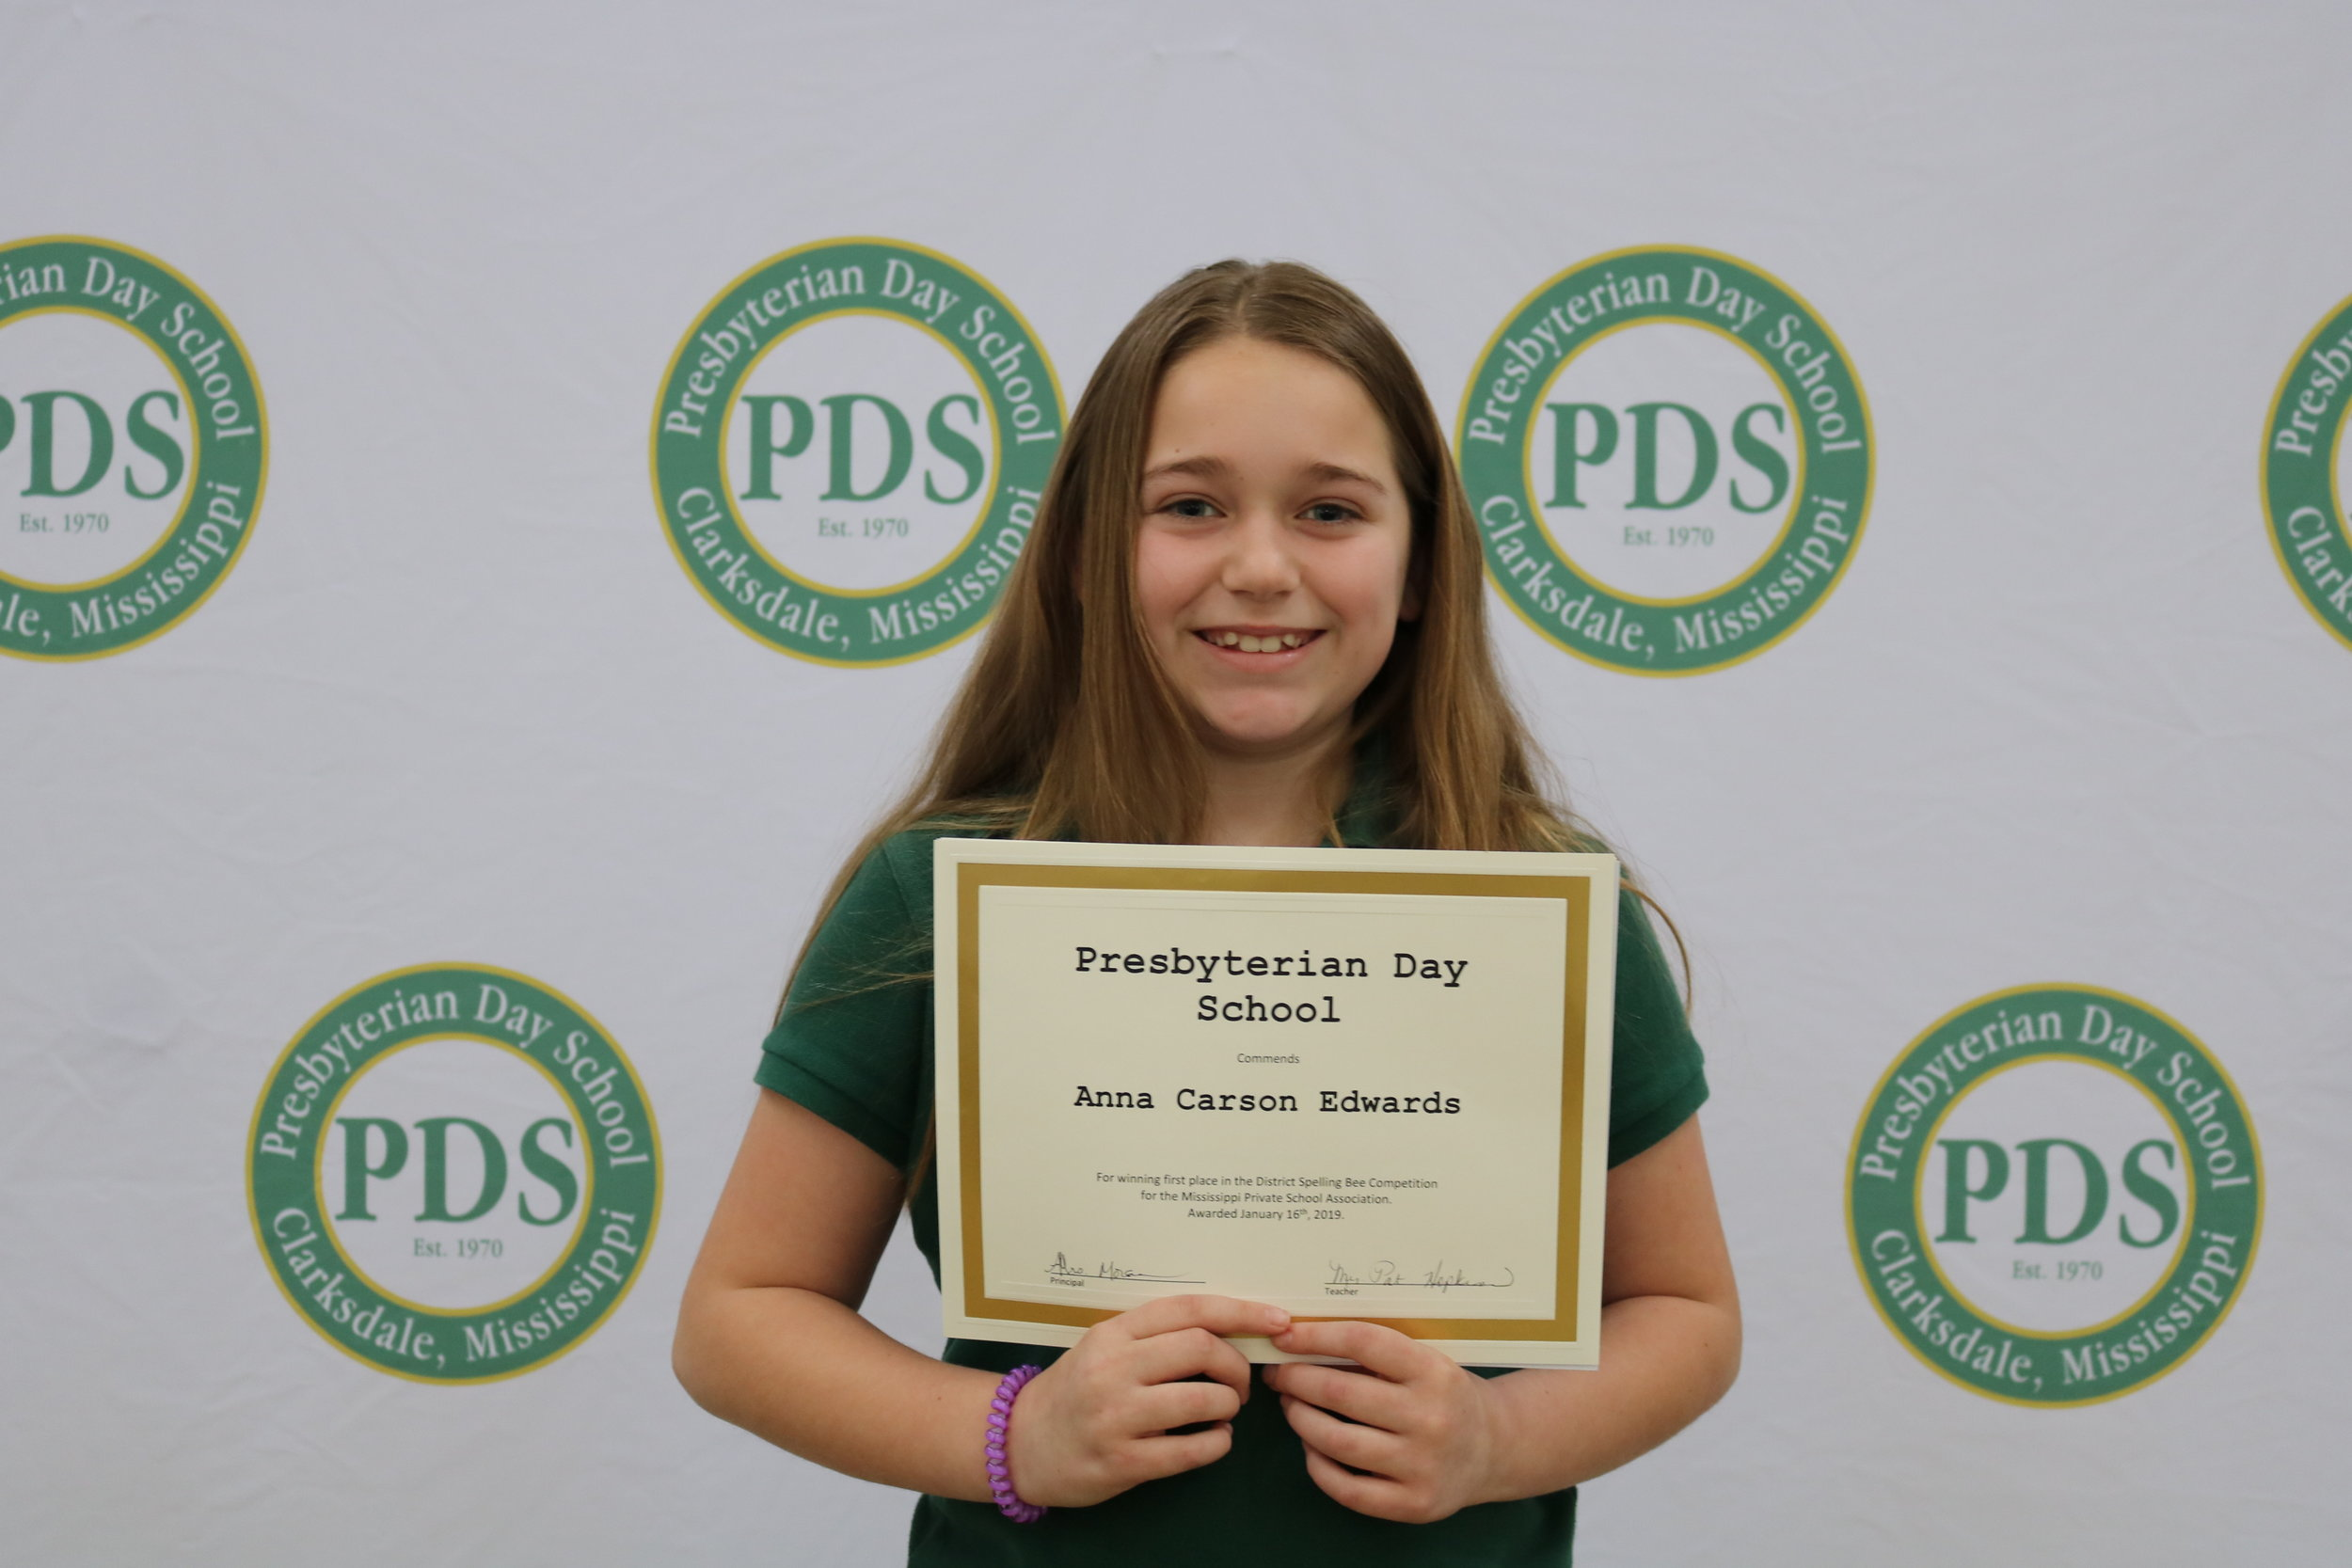 District spelling bee 1st place winner - Anna Carson Edwards